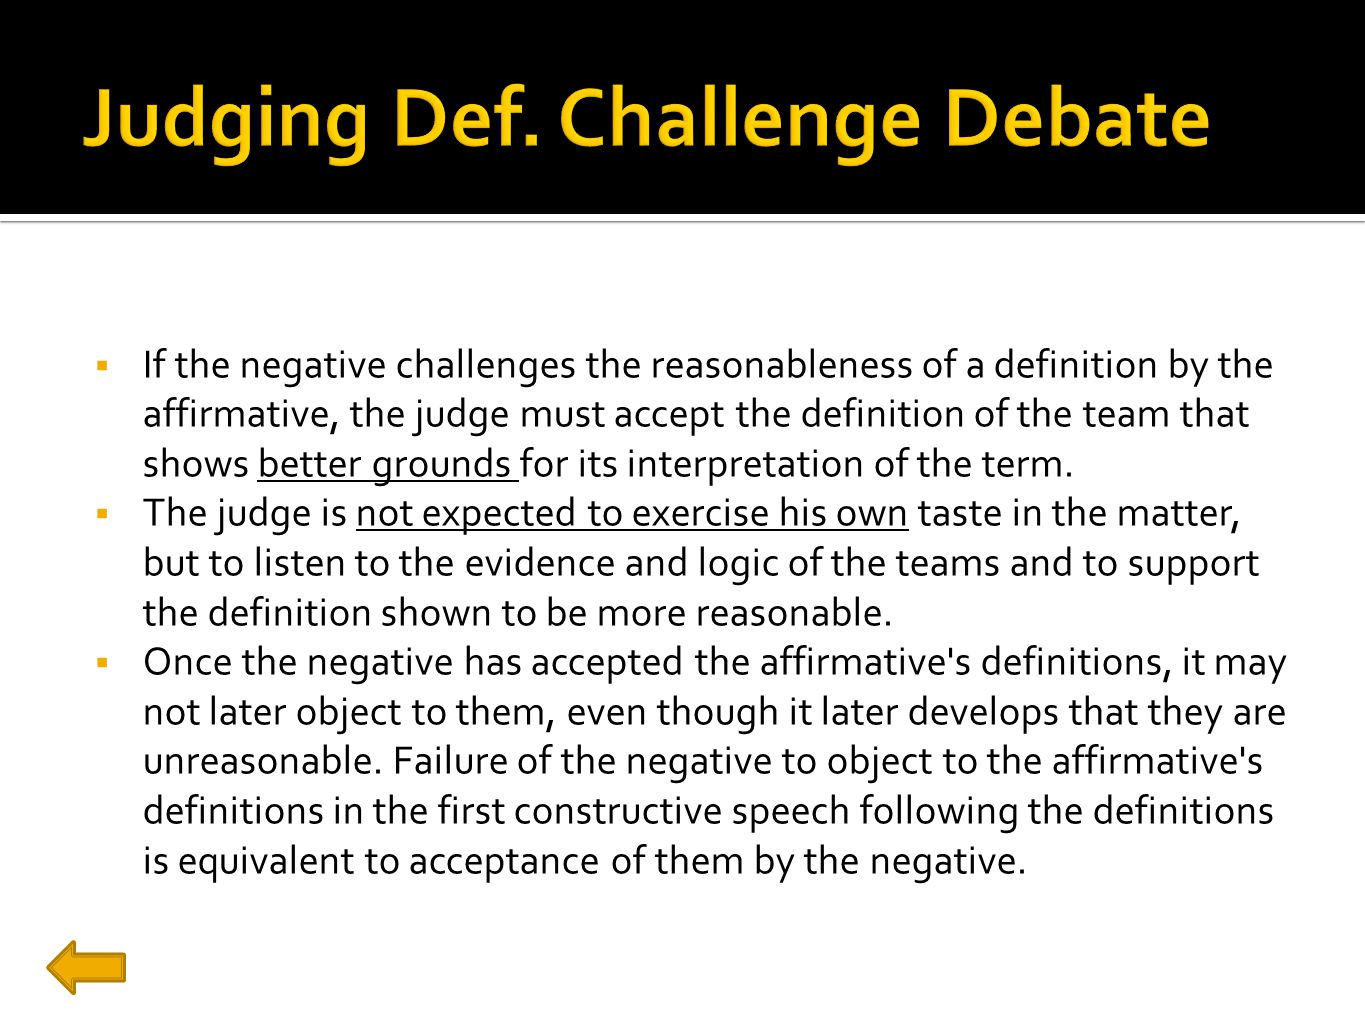  If the negative challenges the reasonableness of a definition by the affirmative, the judge must accept the definition of the team that shows better grounds for its interpretation of the term.